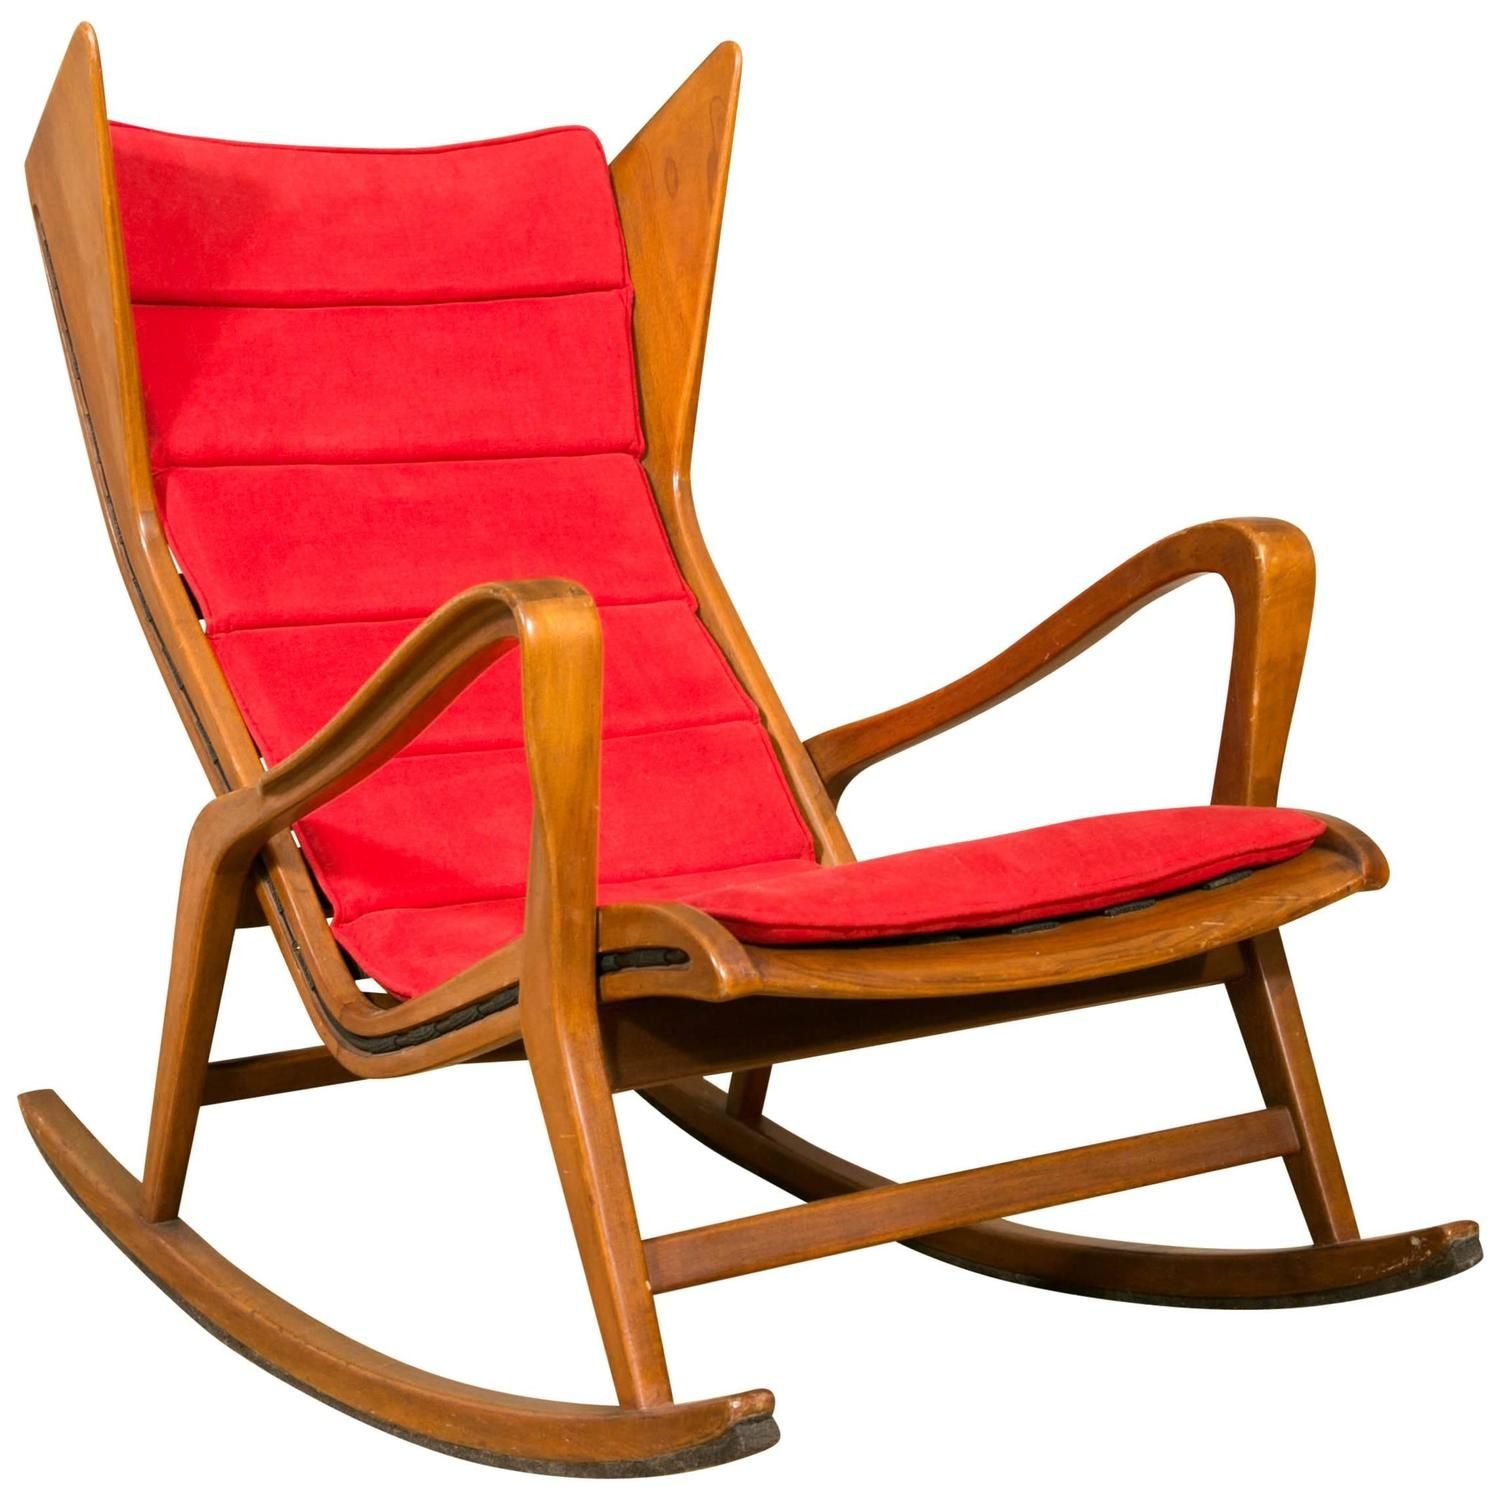 Rocking Chair In Walnut Designed By Gio Ponti For Cassina Circa